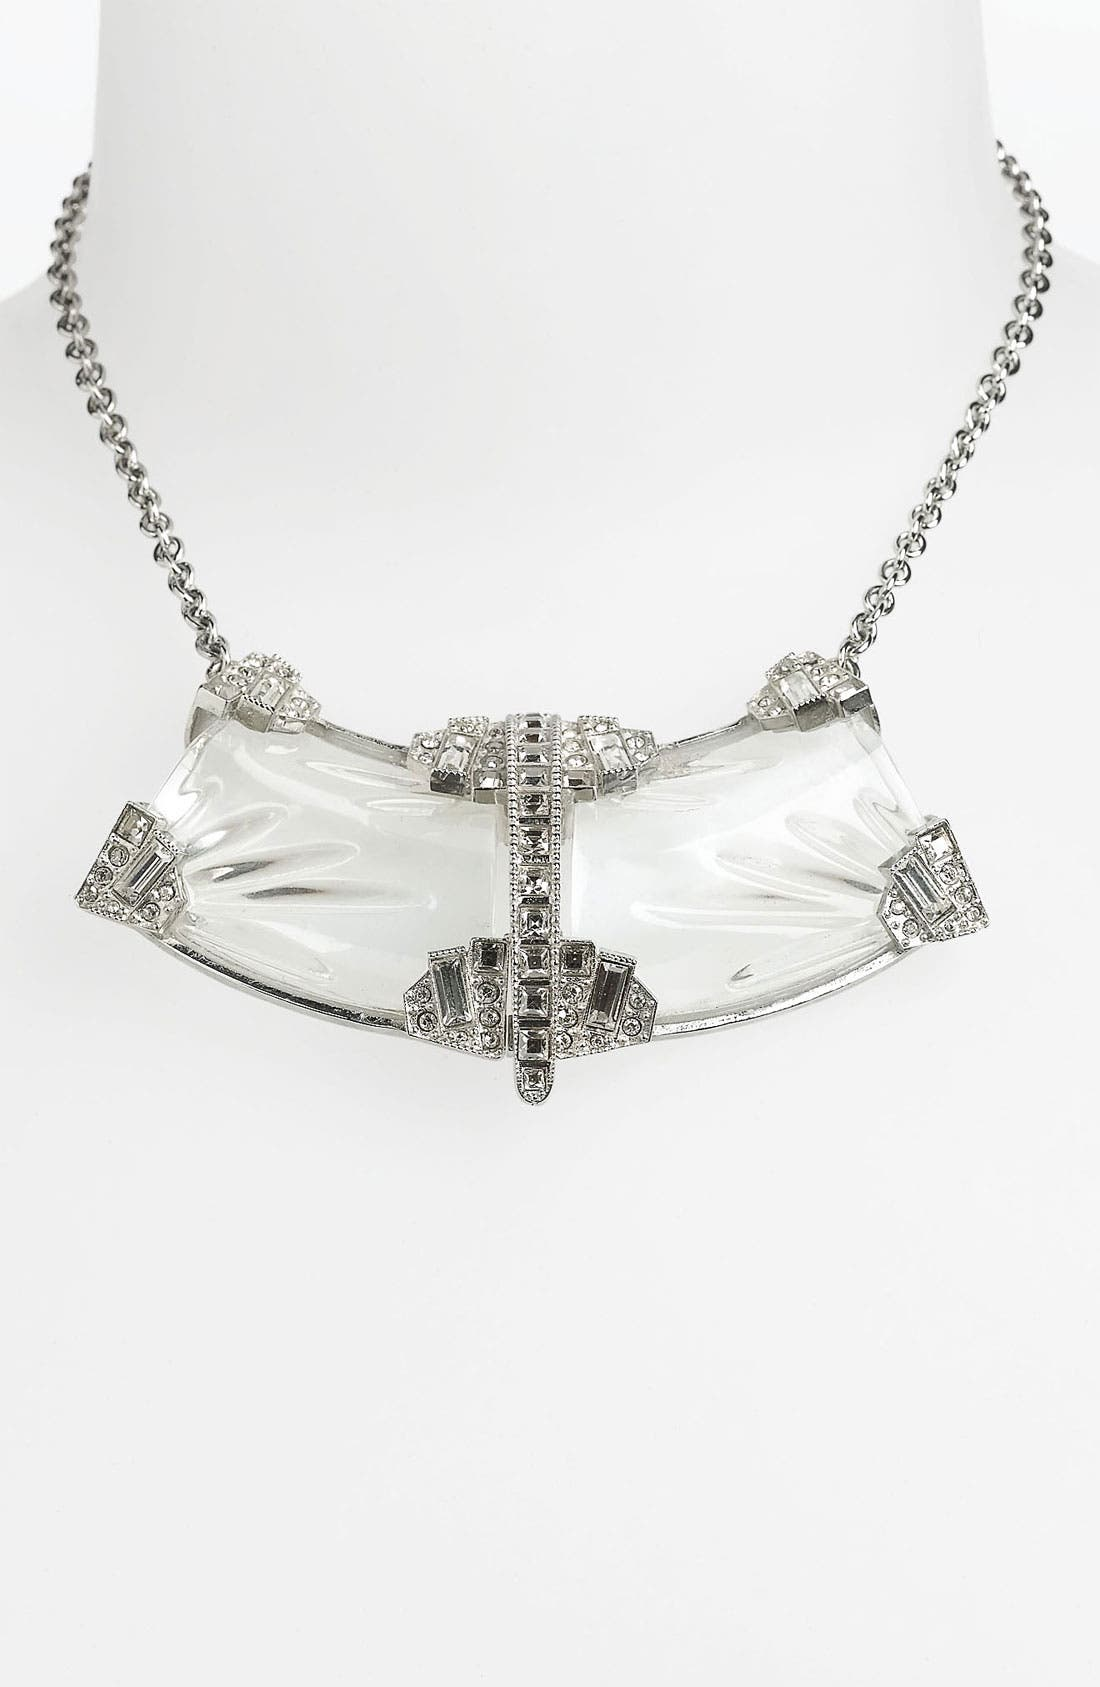 Main Image - Alexis Bittar 'Teatro Moderne' Bib Necklace (Nordstrom Exclusive)